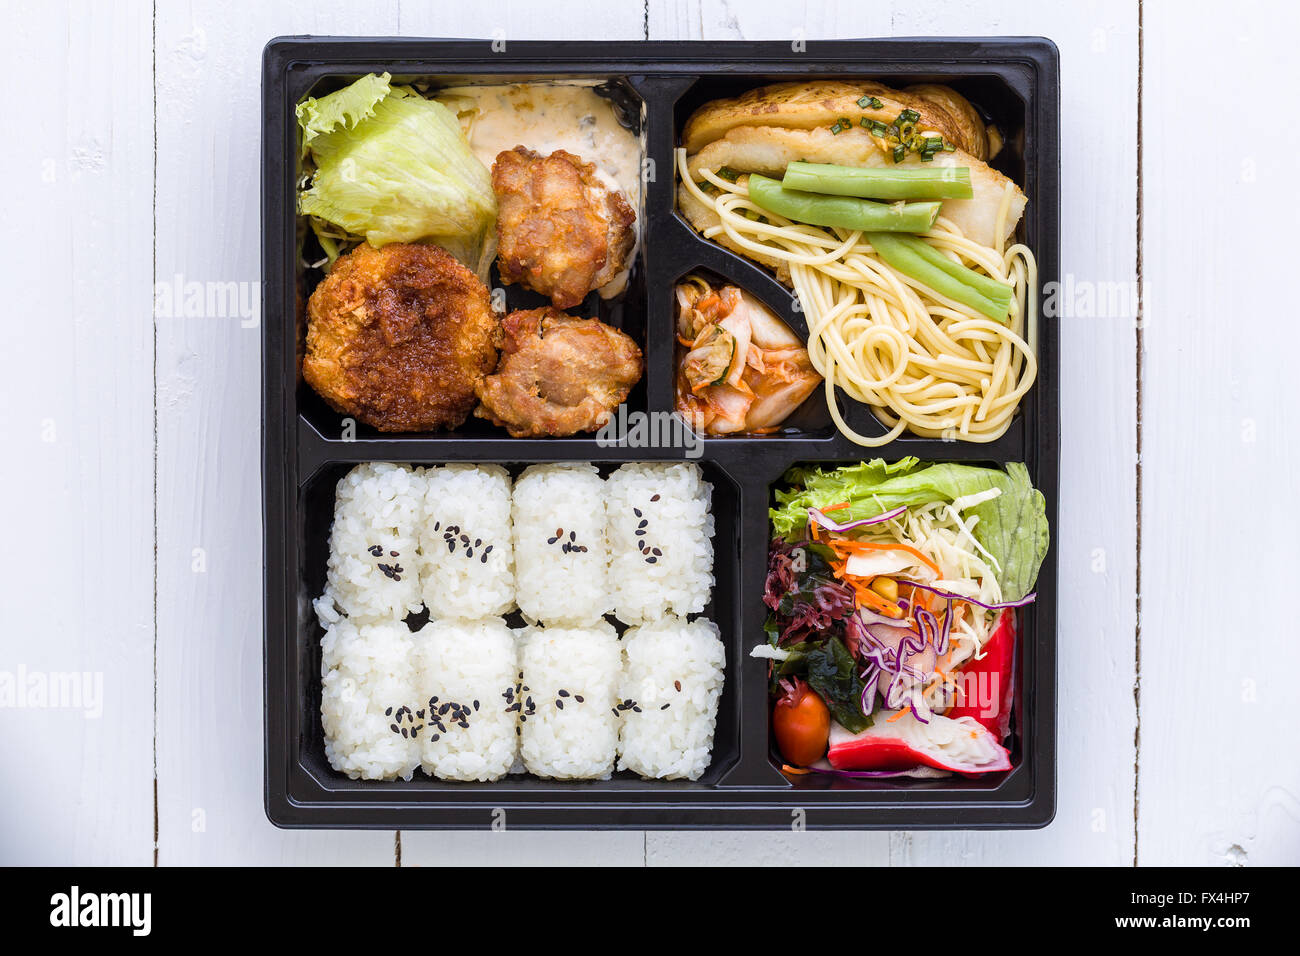 bento box set traditional japanese food set for lunch stock photo royalty free image. Black Bedroom Furniture Sets. Home Design Ideas